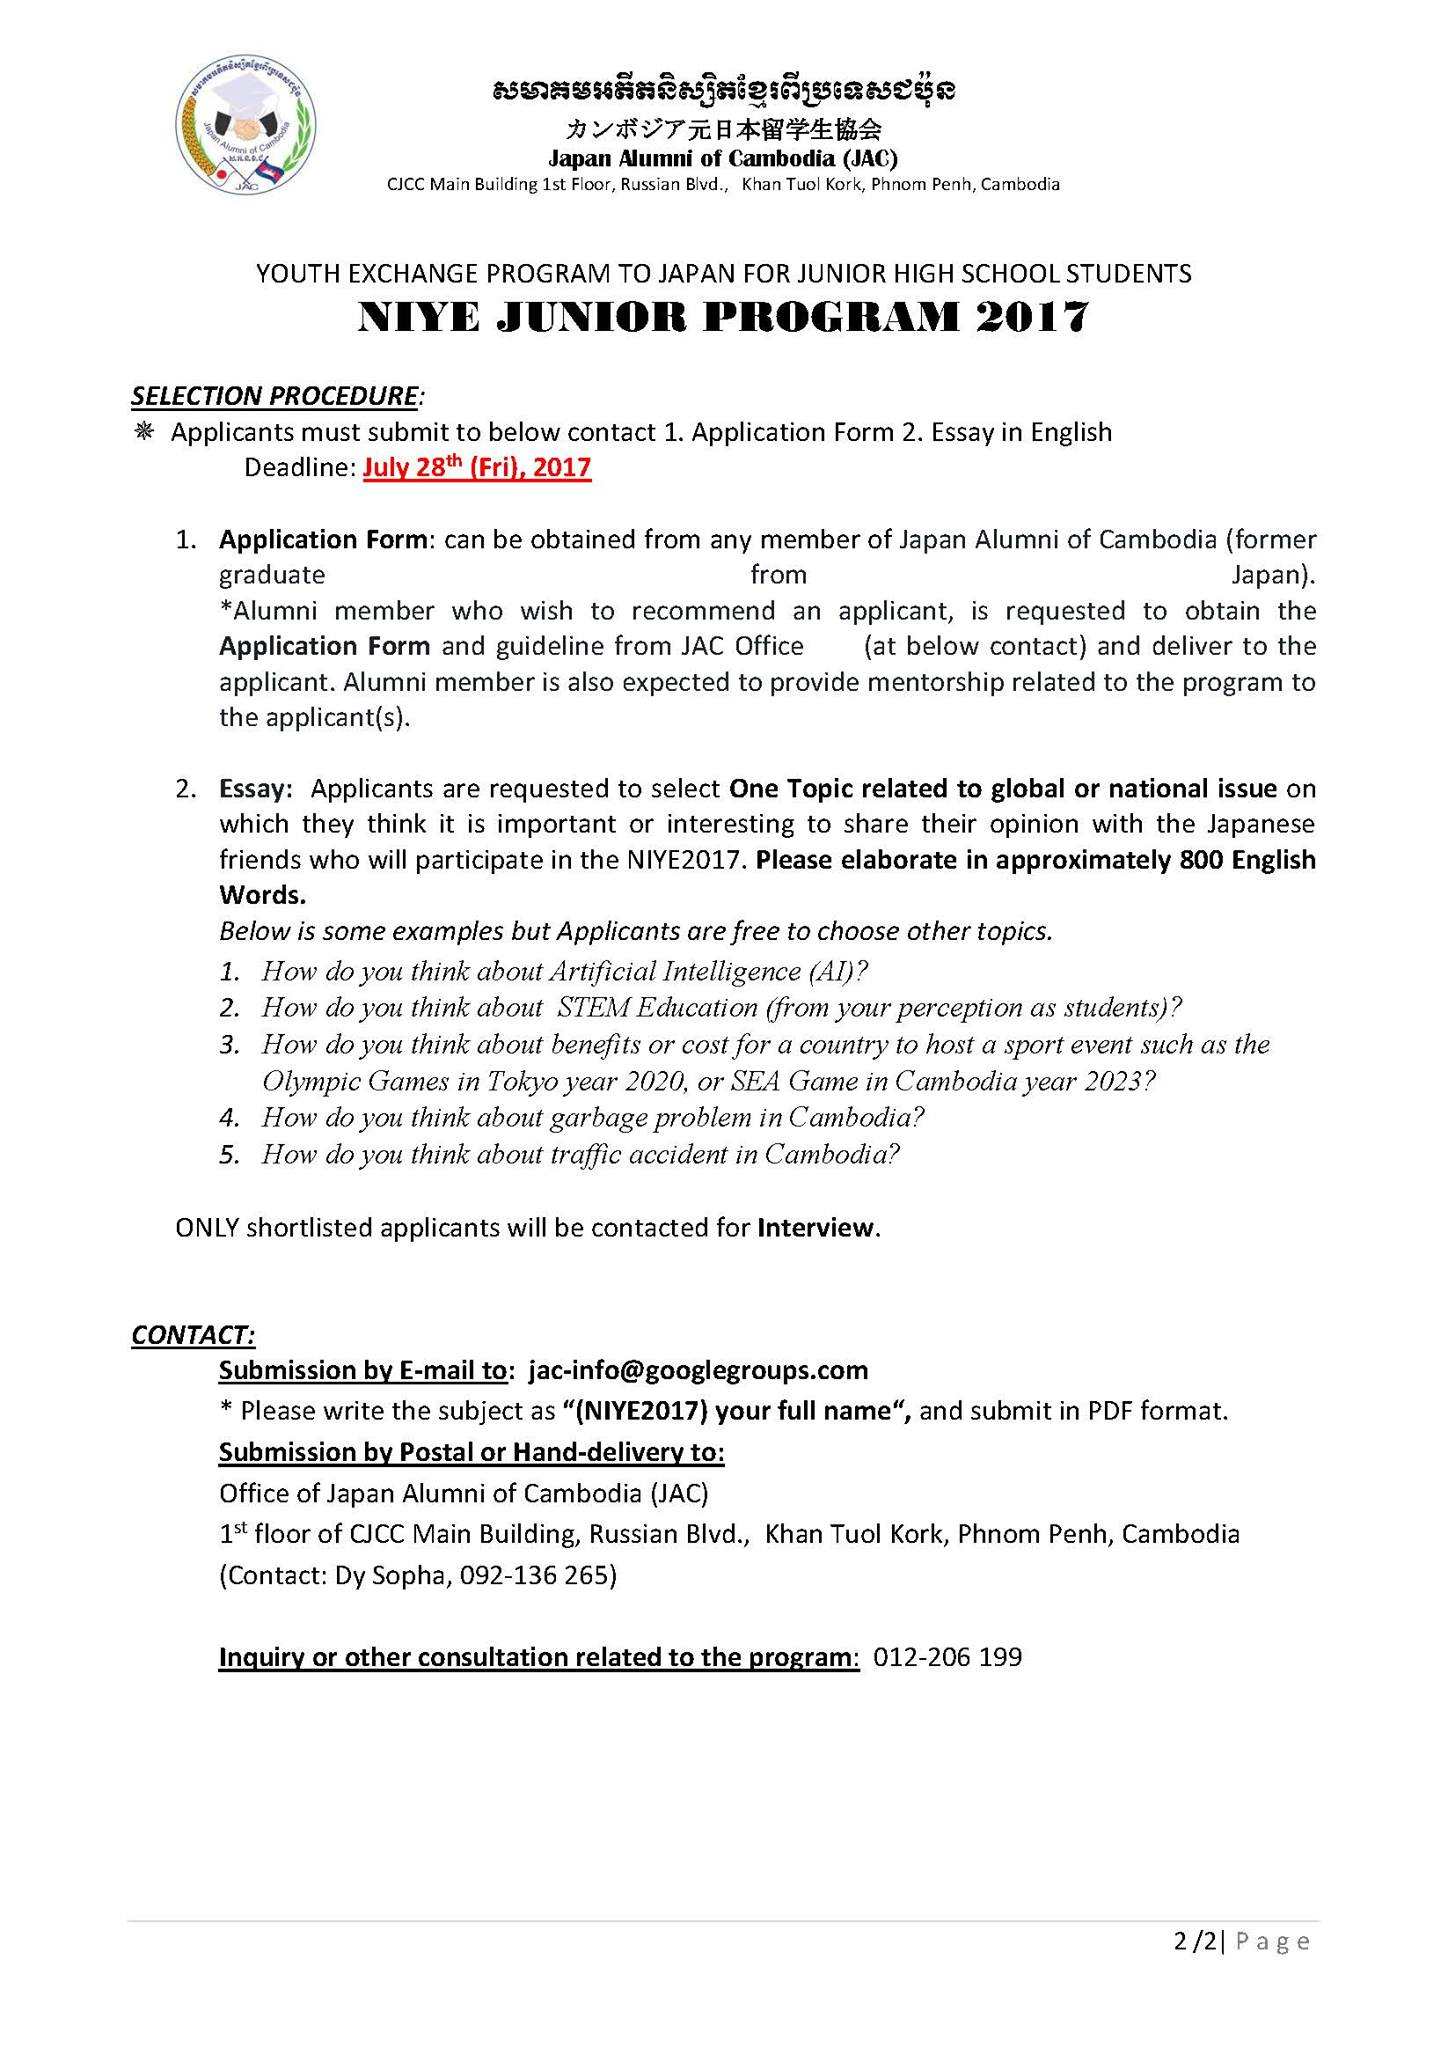 niye junior program   japan alumni of cambodia cambodian junior high school students who meet below qualification and  requirement are cordially invited to apply for this program